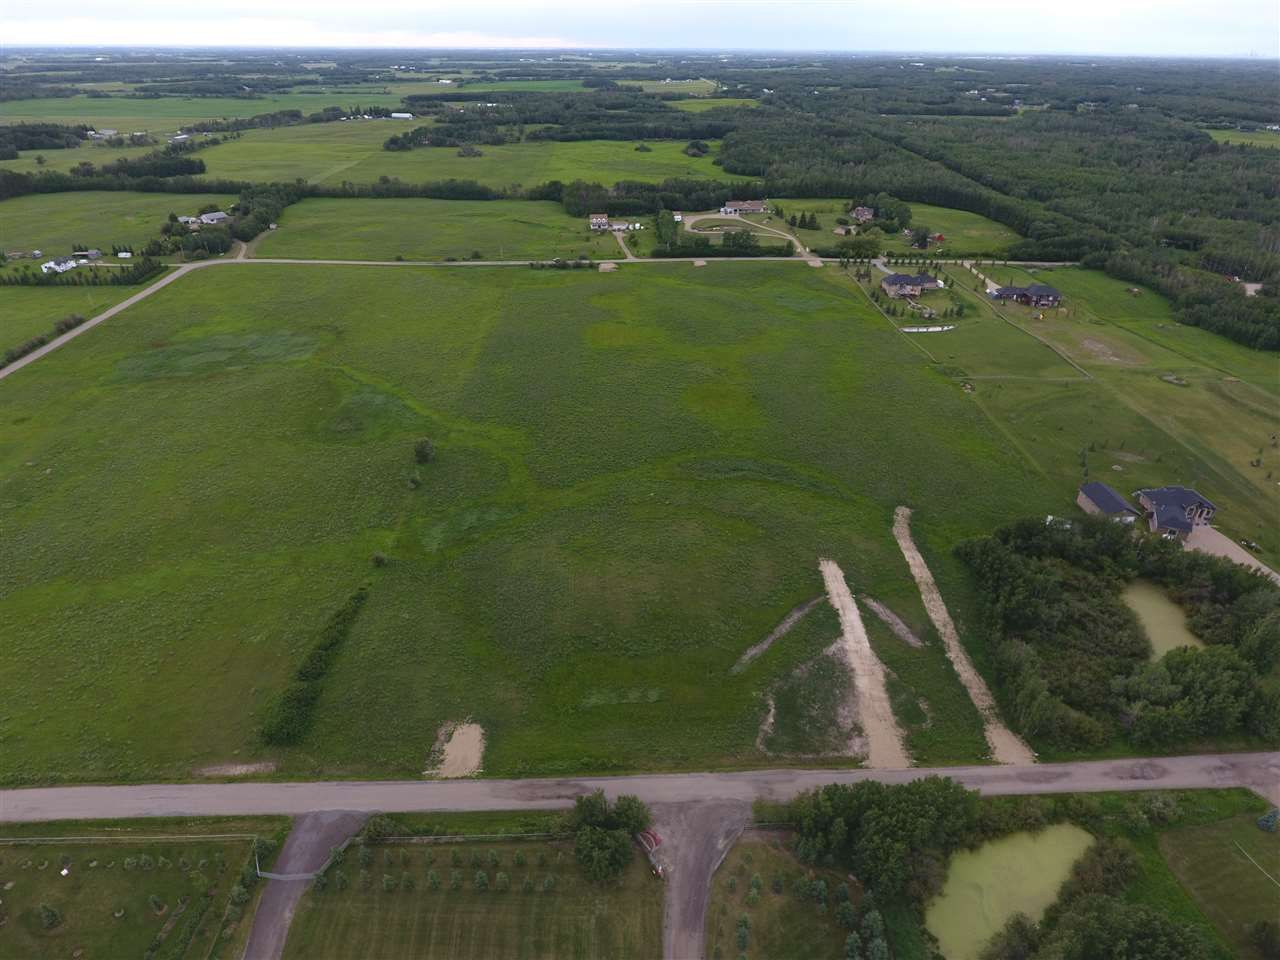 Main Photo: 22111 Twp Rd 510: Rural Leduc County Rural Land/Vacant Lot for sale : MLS®# E4211286